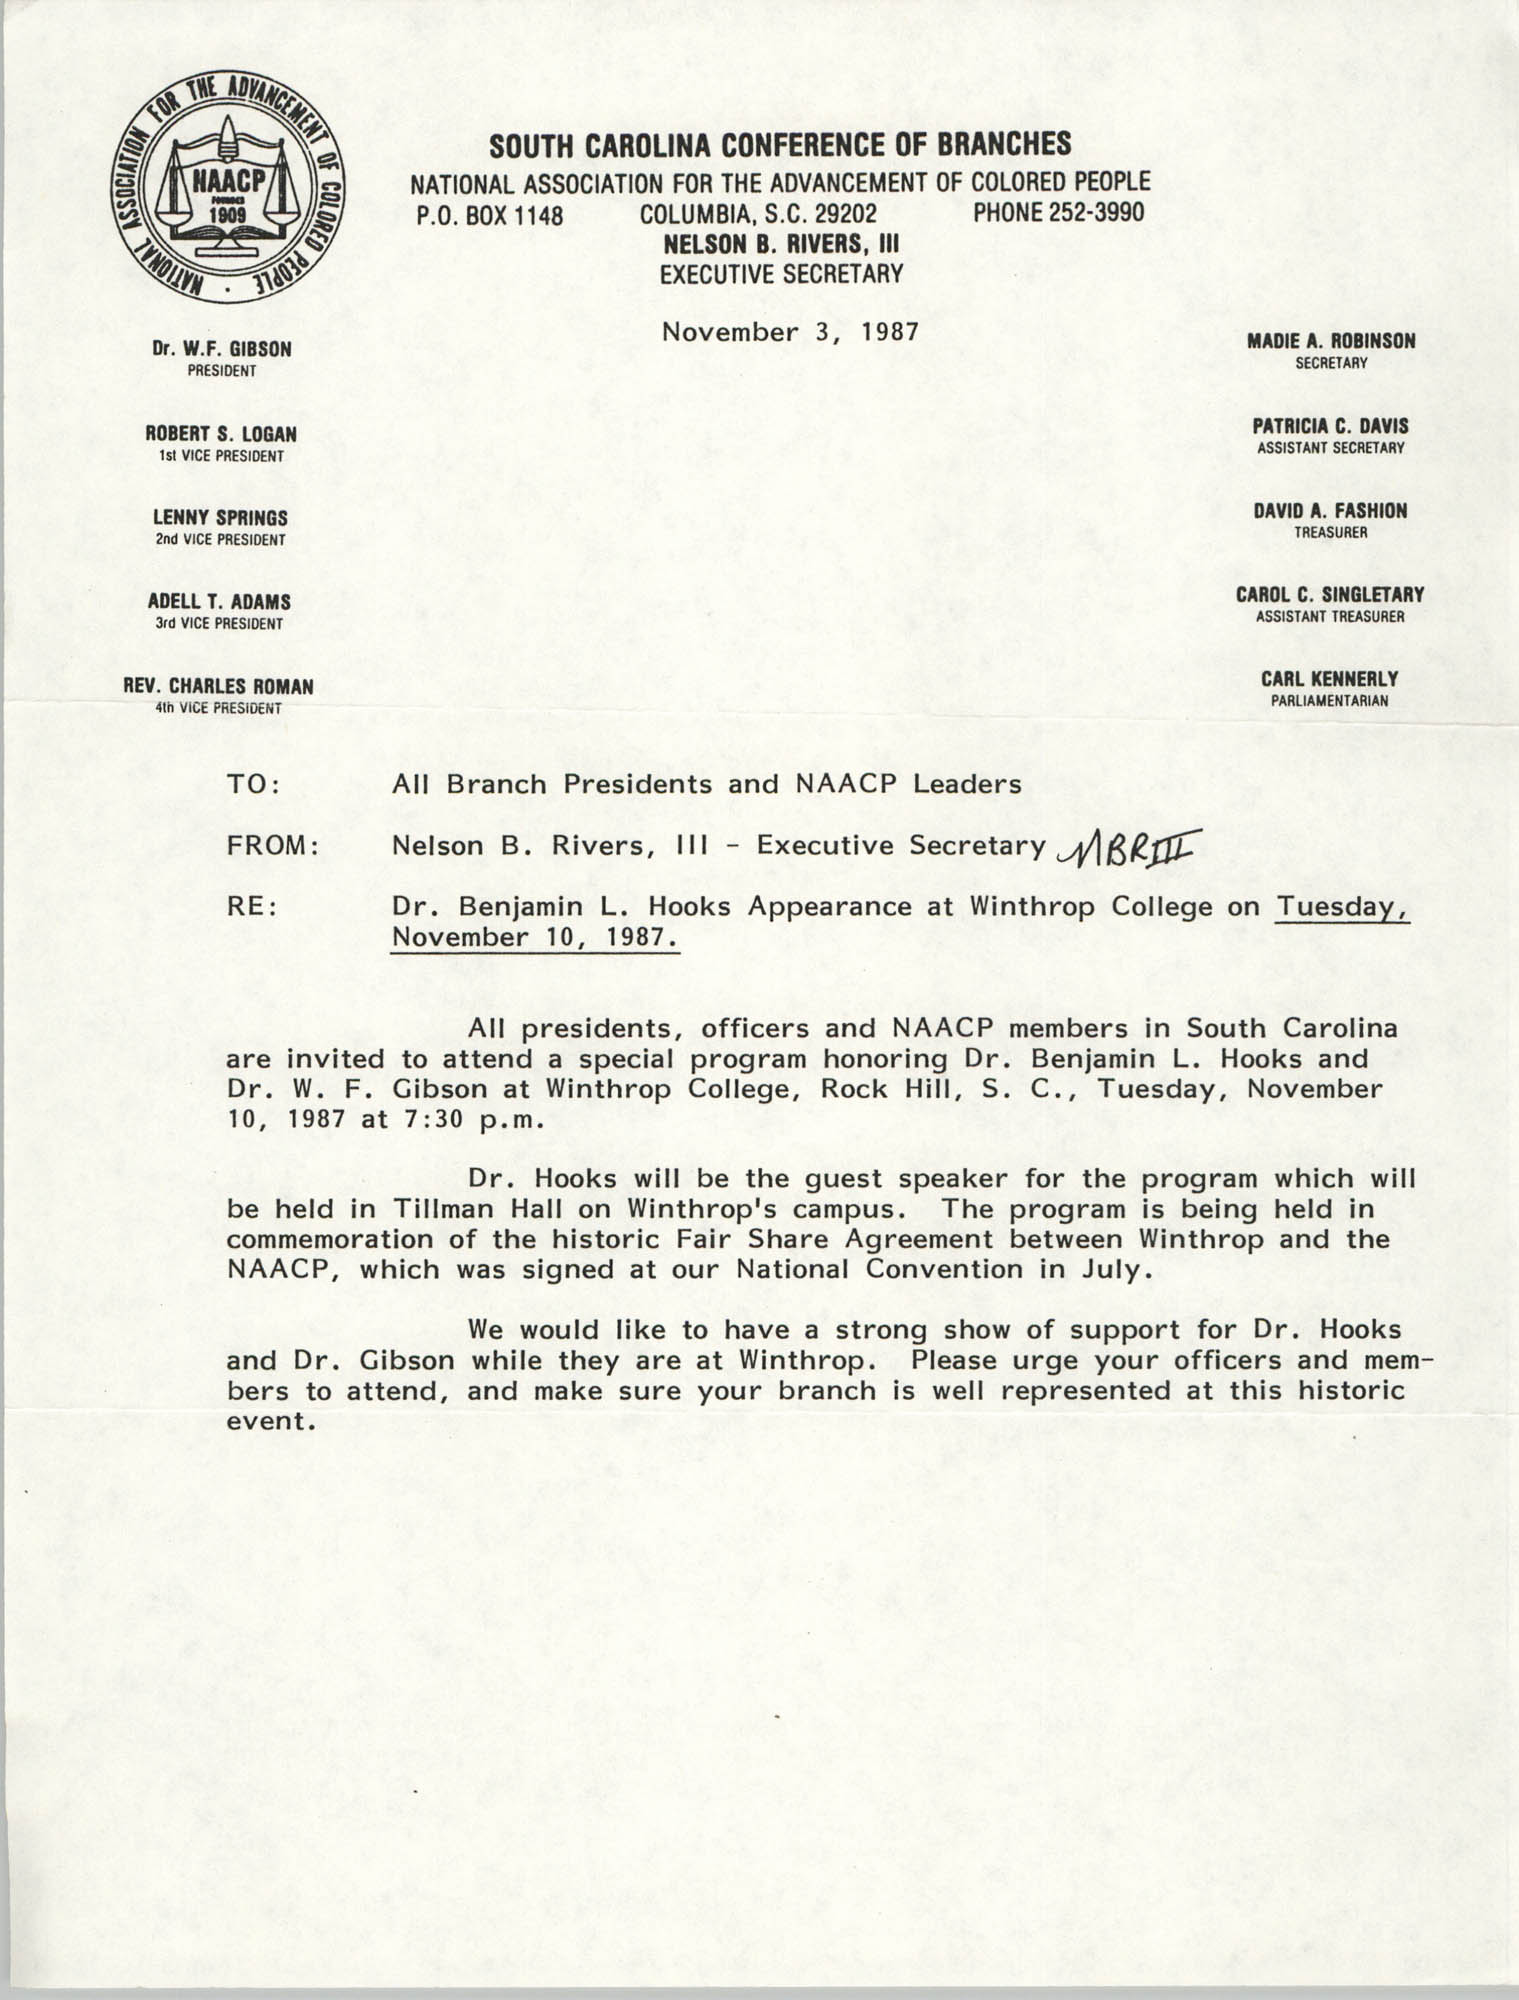 South Carolina Conference of Branches of the NAACP Memorandum, November 3, 1987